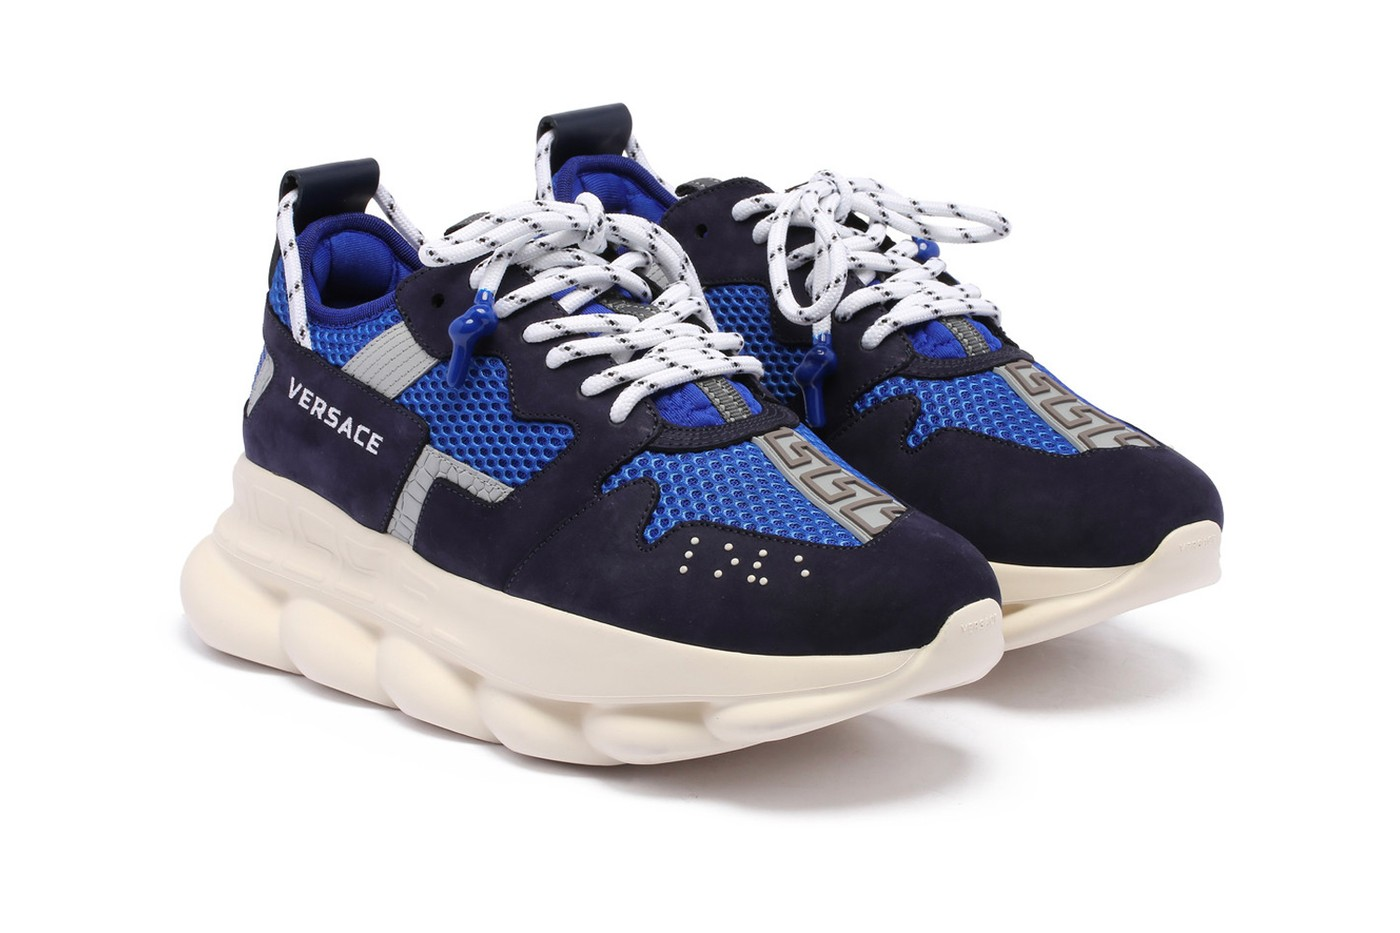 https___hypebeast.com_image_2019_07_versace-chain-reaction-2-sneakers-blue-release-info-02.jpg